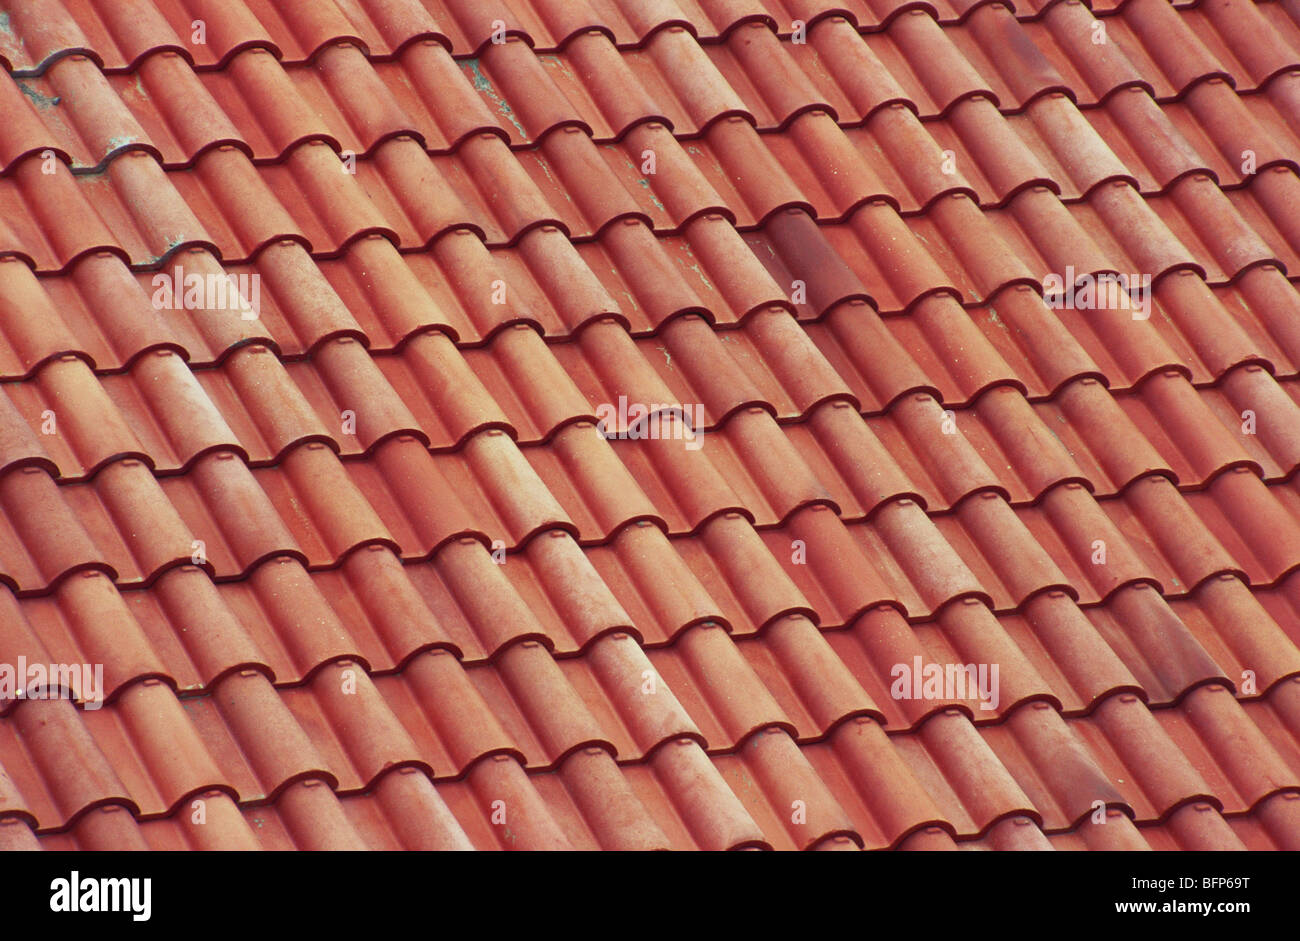 NMK 66213 : Red Terracotta Roof Tiles Of Guest House Of Swaminarayan Temple  ; Sarangpur ; Gujarat ; India